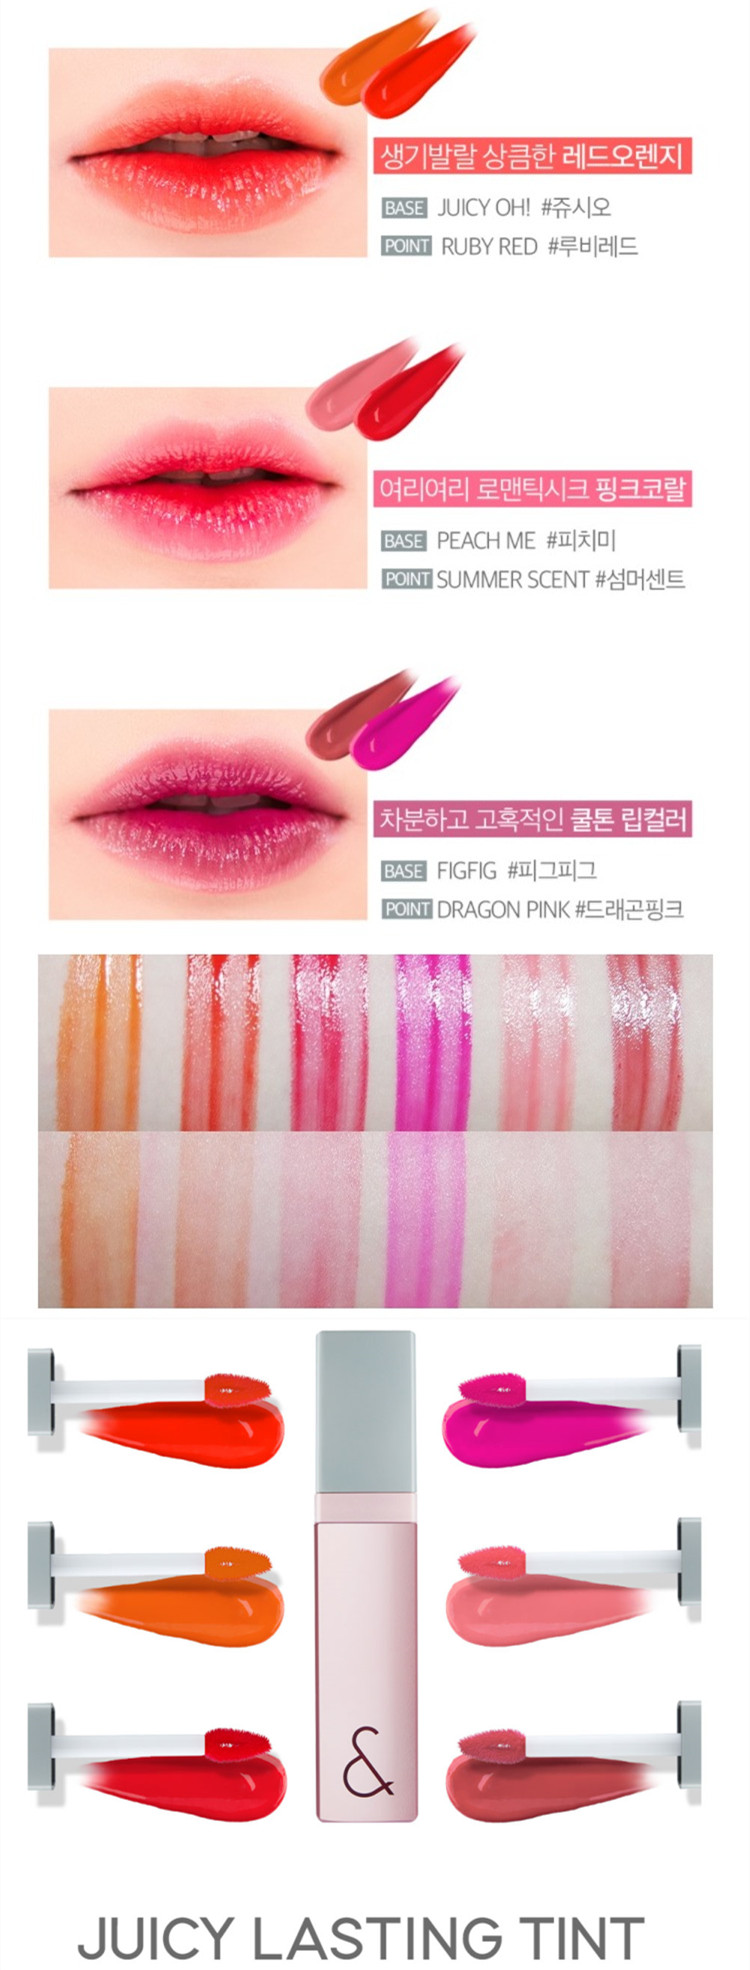 Rom & Juicy Lasting Tint 甜美可口持久鎖色唇彩